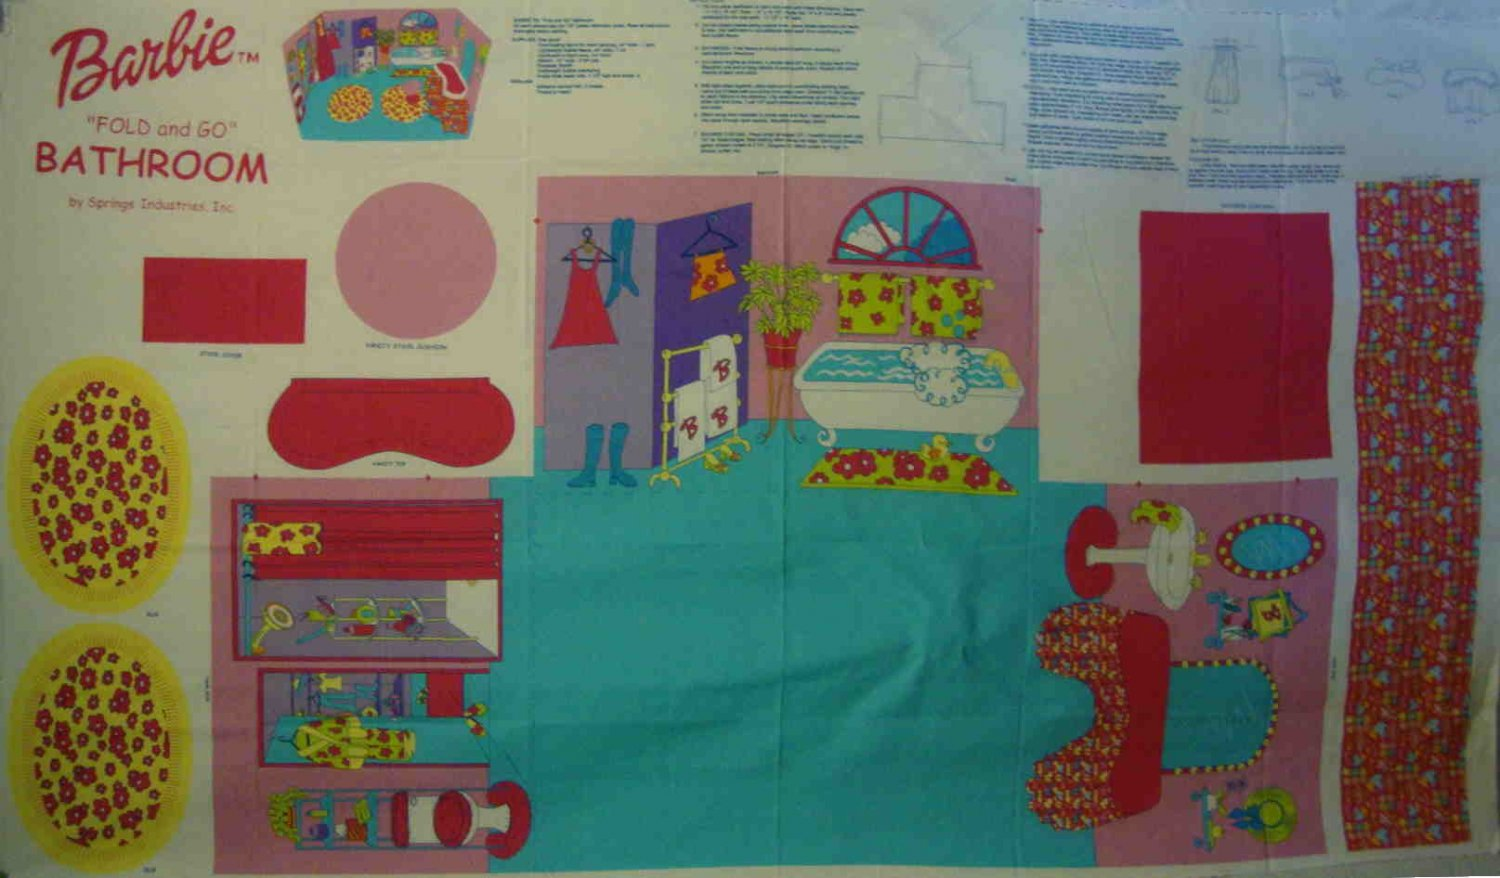 Barbie Fold and Go Bathroom Add A Room Cotton Fabric Panel LAST ONE!